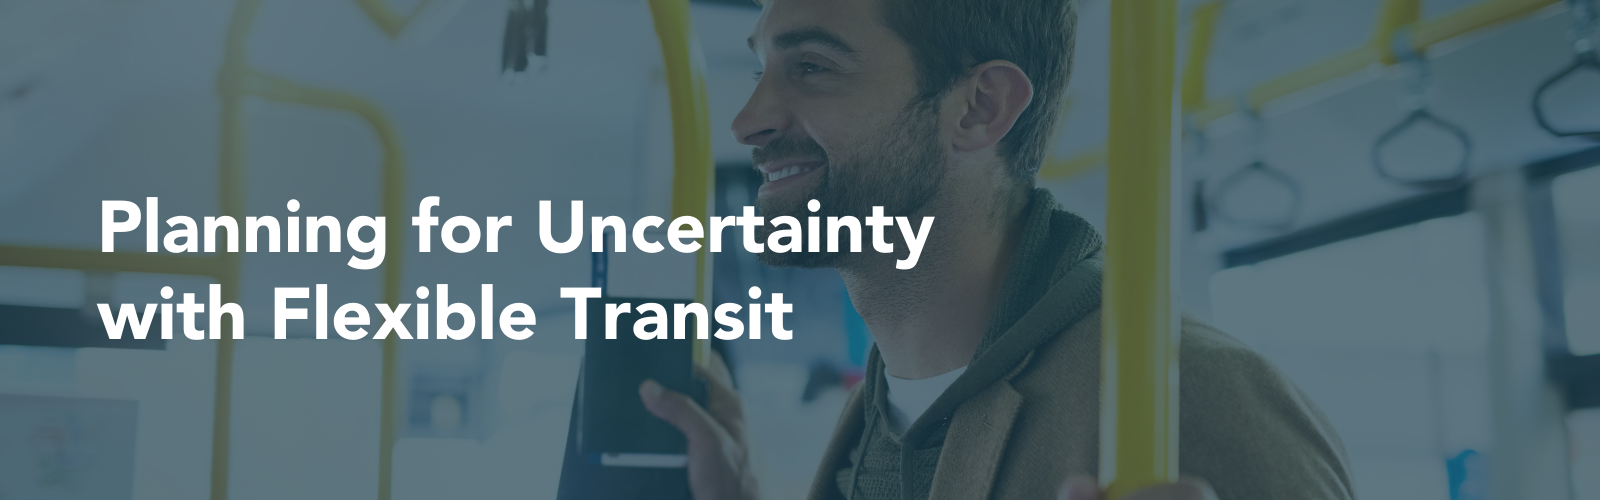 Planning for Uncertainty with Flexible Transit